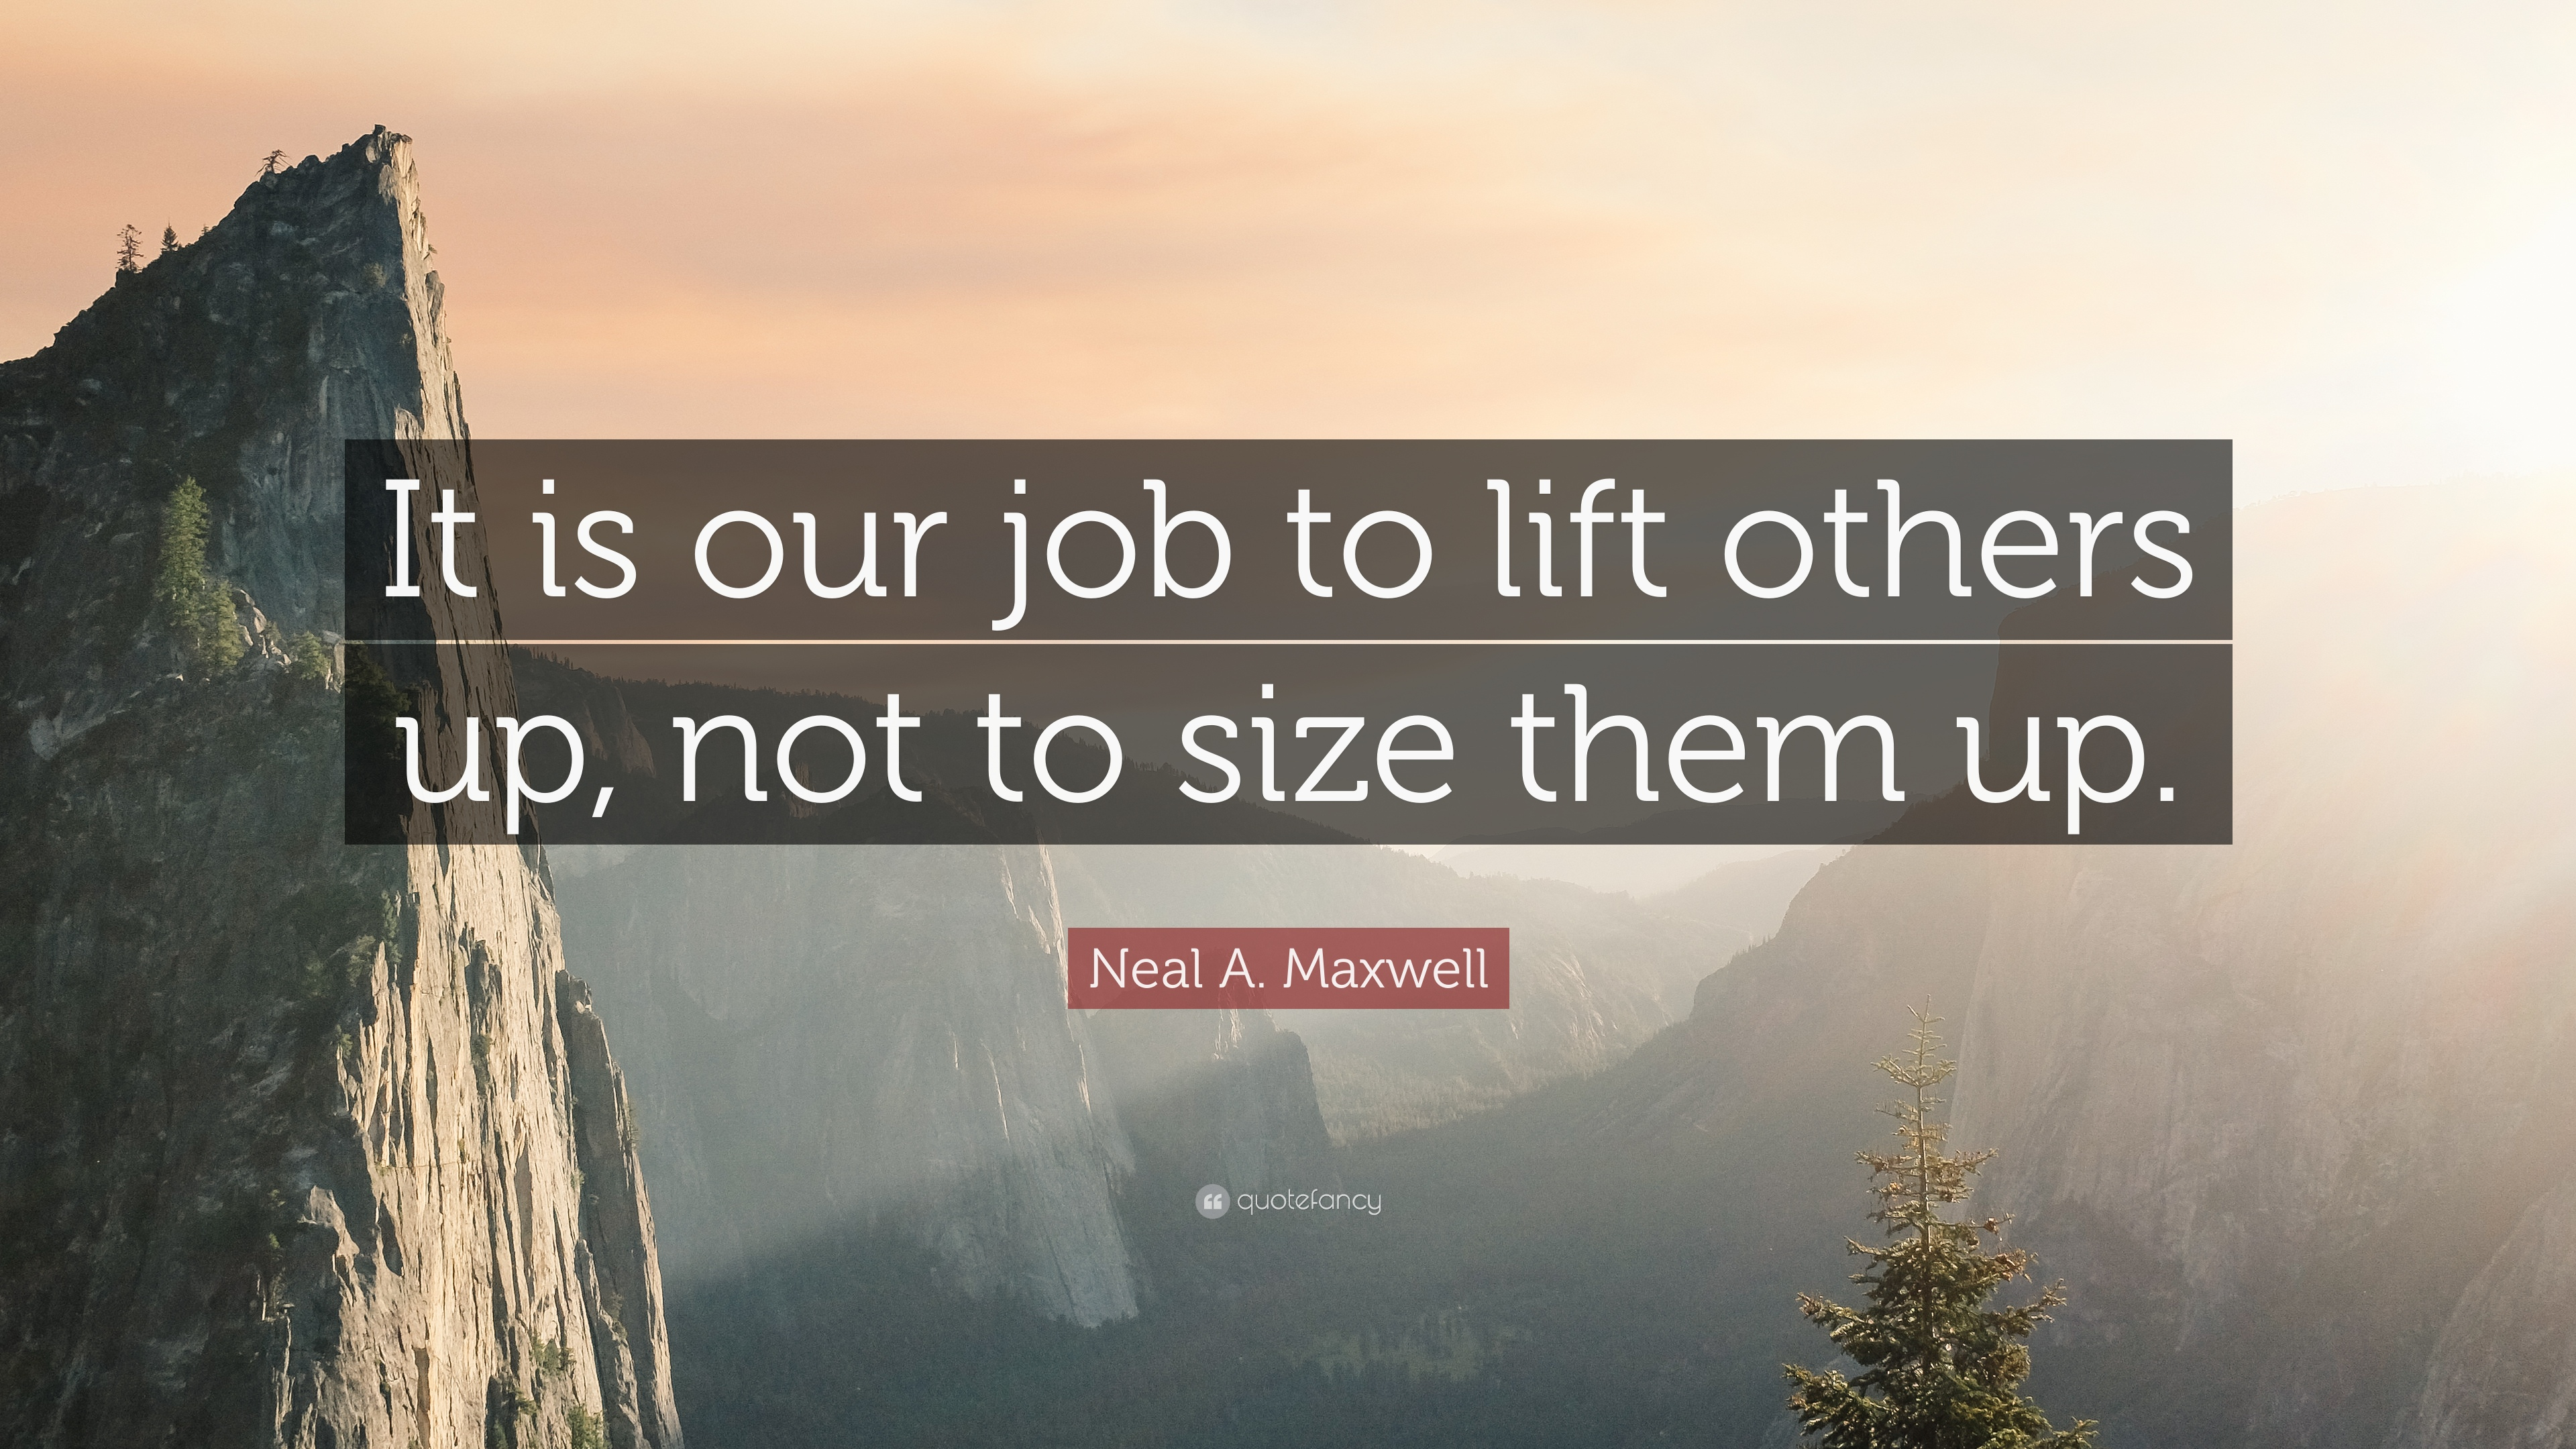 Neal A Maxwell Quote It Is Our Job To Lift Others Up Not To Size